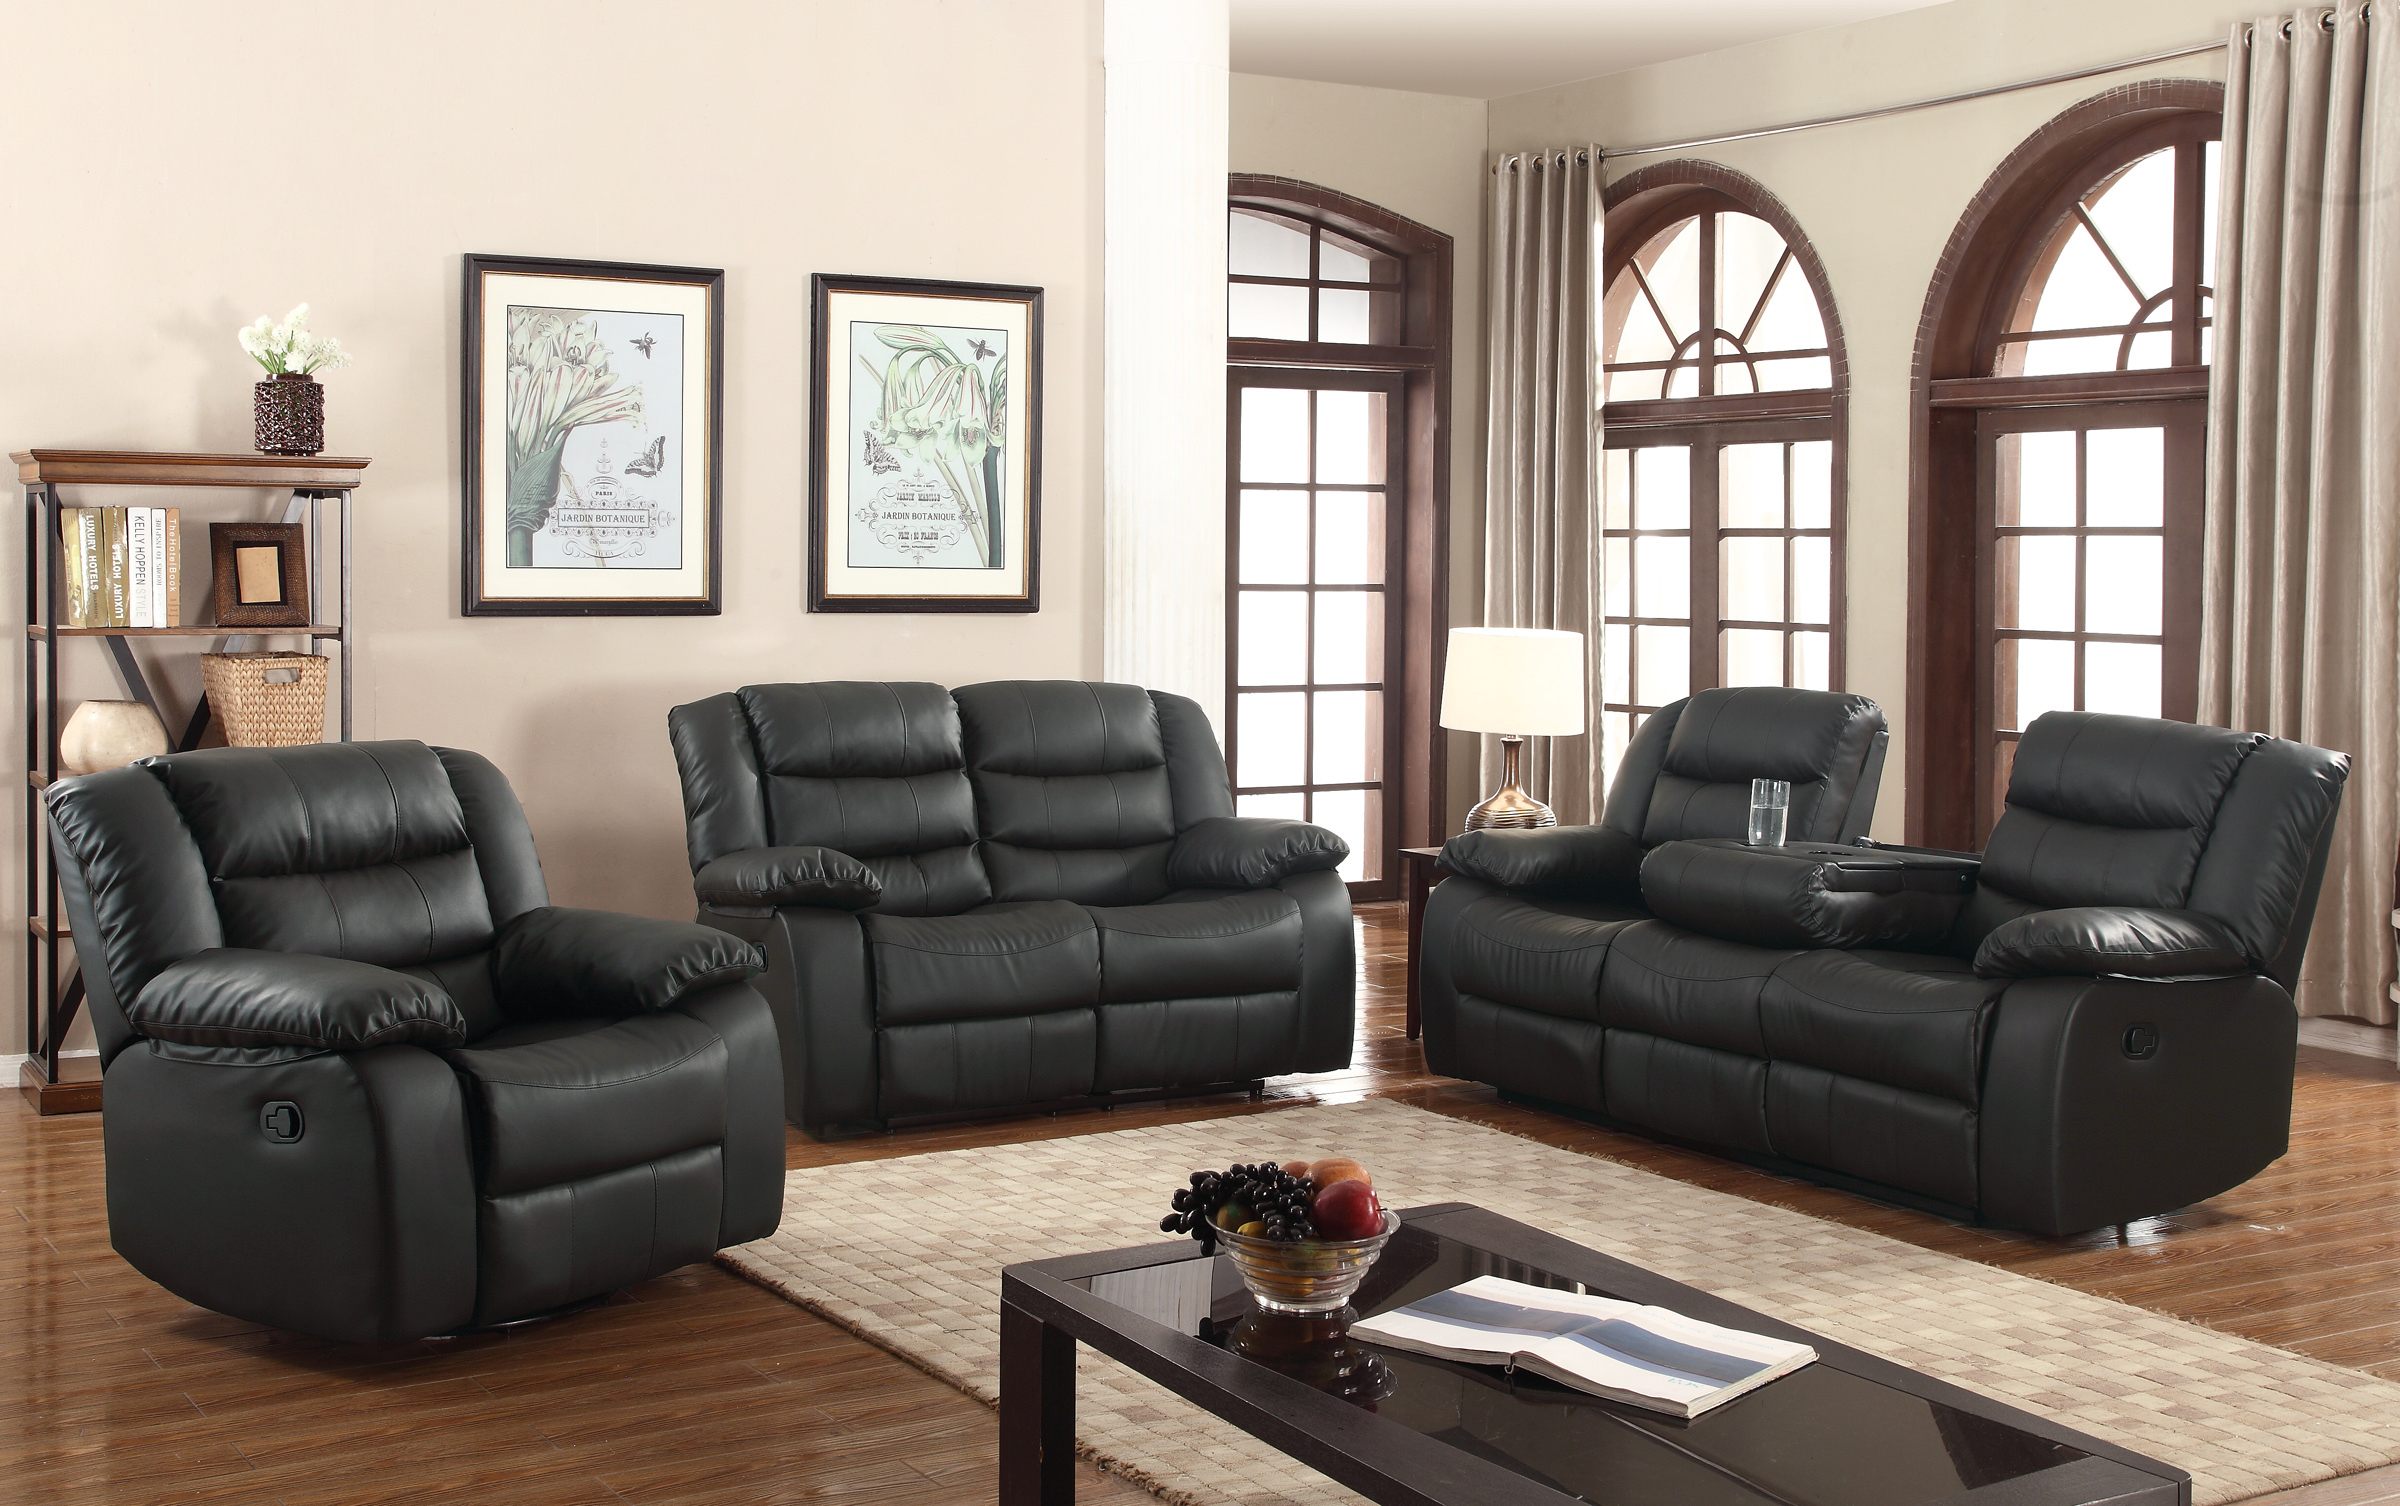 layla 3 pc black faux leather living room reclining sofa set with dropdown tea